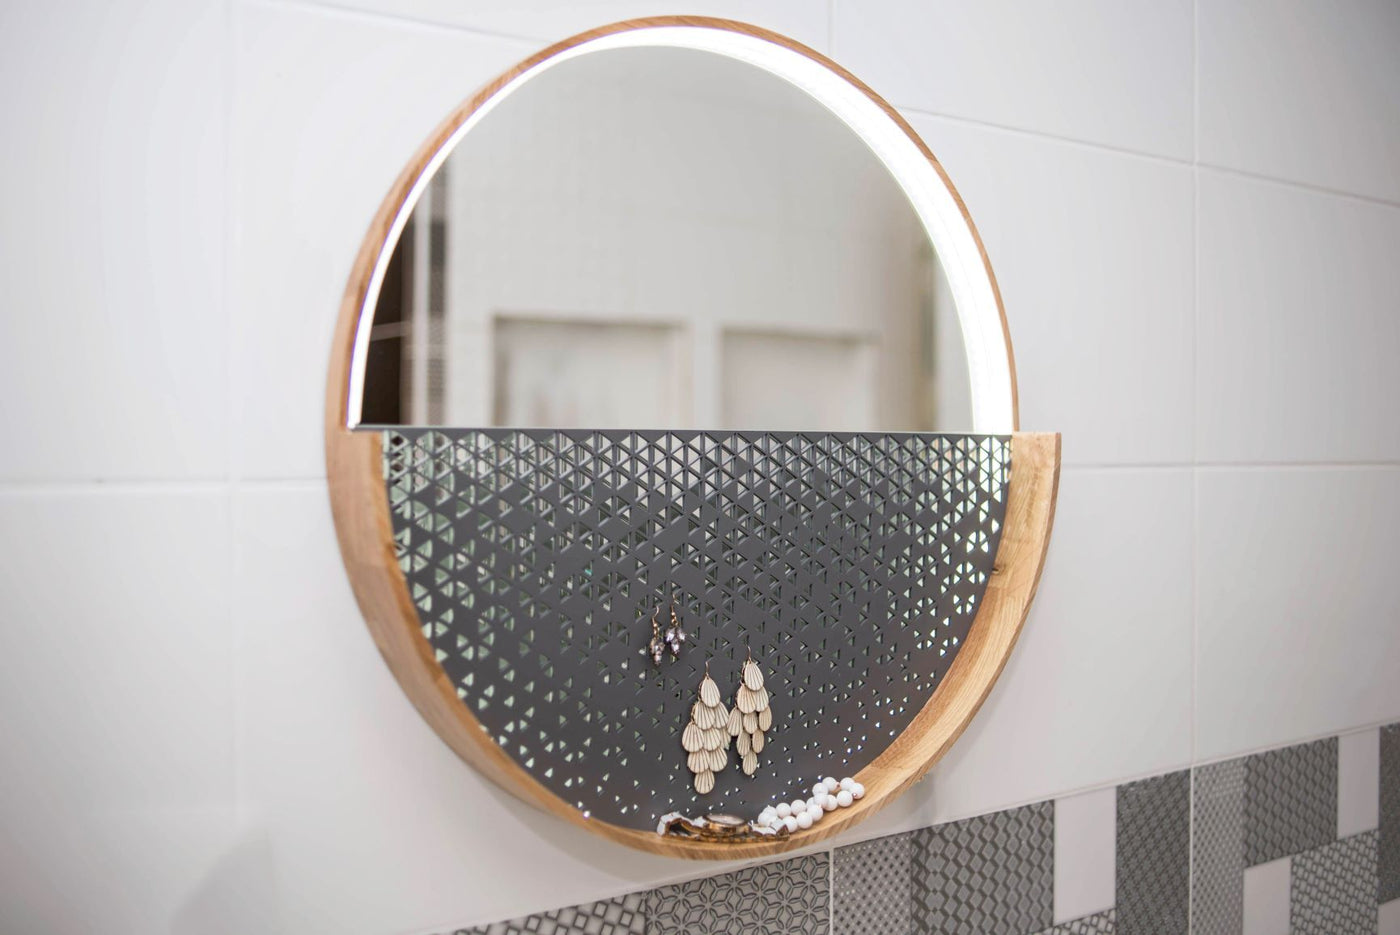 Wooden round makeup mirrors with light. Adjustable light brightness